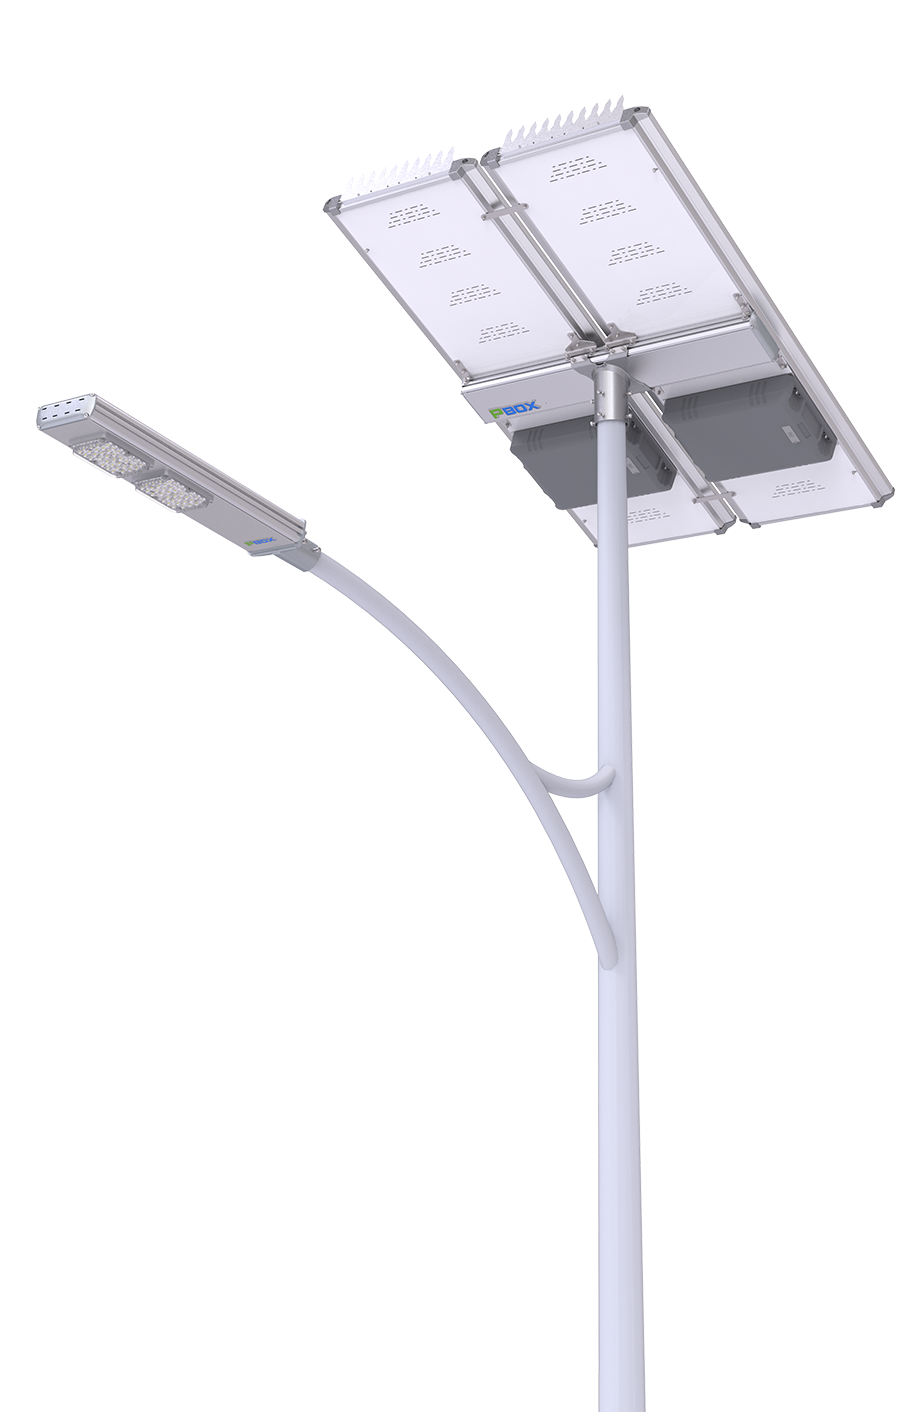 Split solar led street light